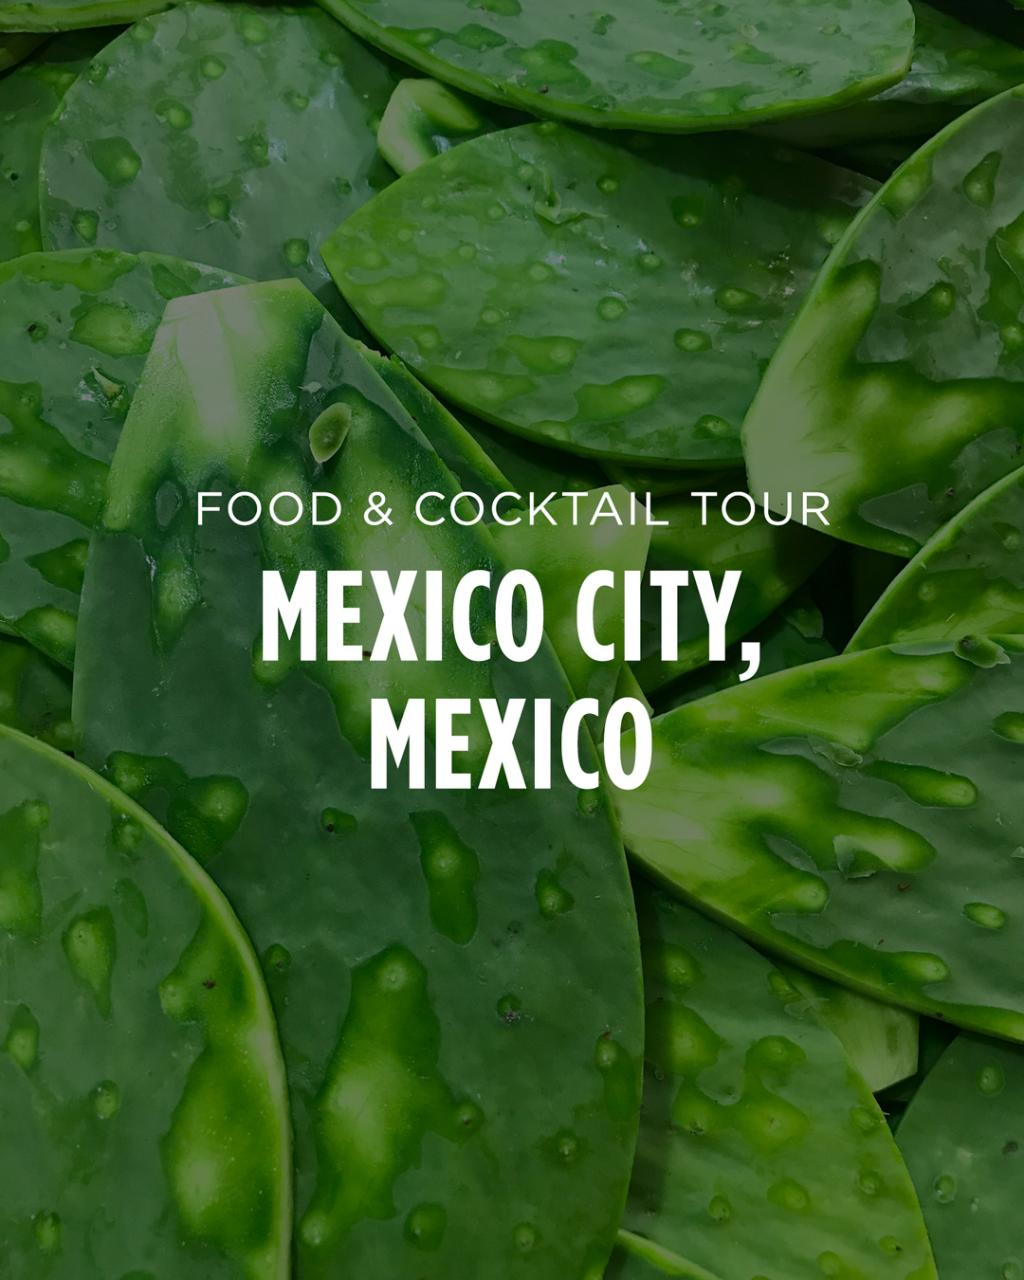 Mexico City, Mexico || Food & Cocktail Tour